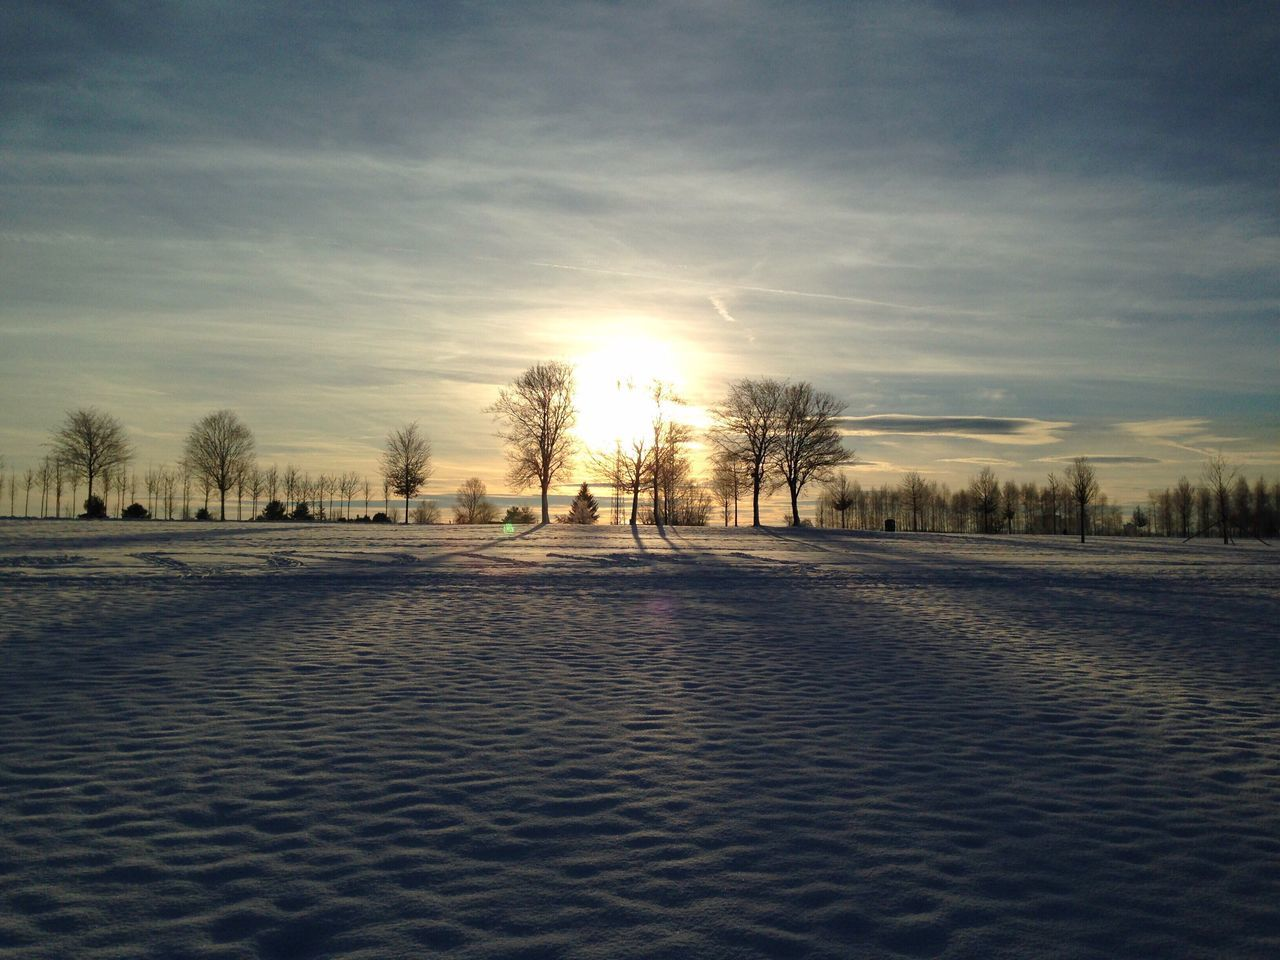 cold temperature, winter, snow, tree, nature, sky, weather, outdoors, sunset, scenics, tranquility, sun, beauty in nature, landscape, tranquil scene, no people, cloud - sky, bare tree, day